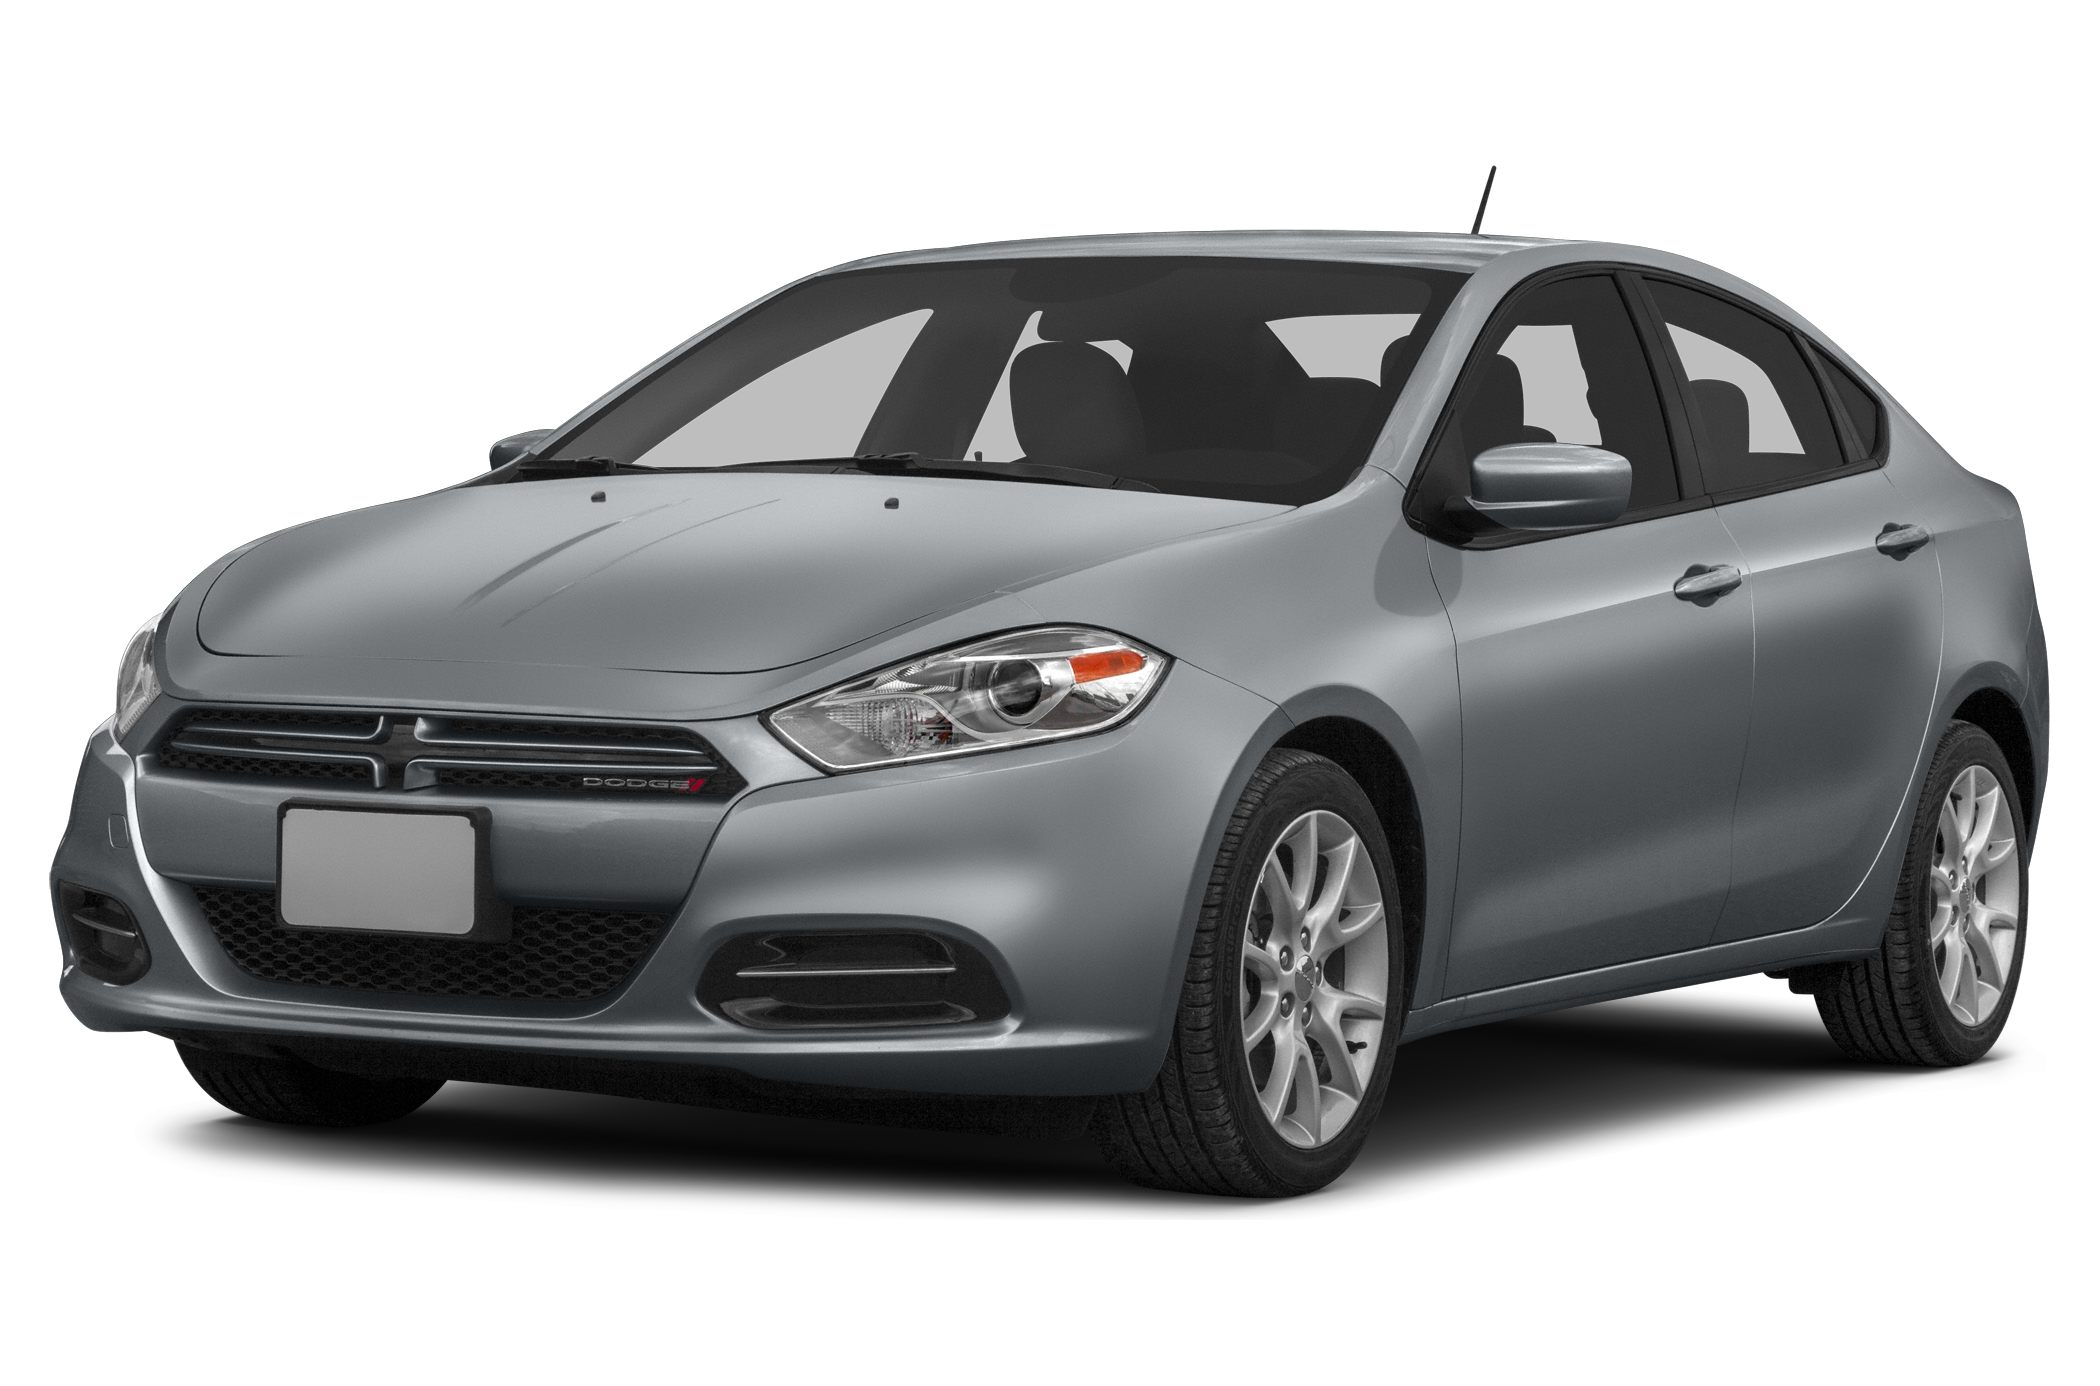 2015 Dodge Dart SE Sedan for sale in Hermiston for $0 with 5 miles